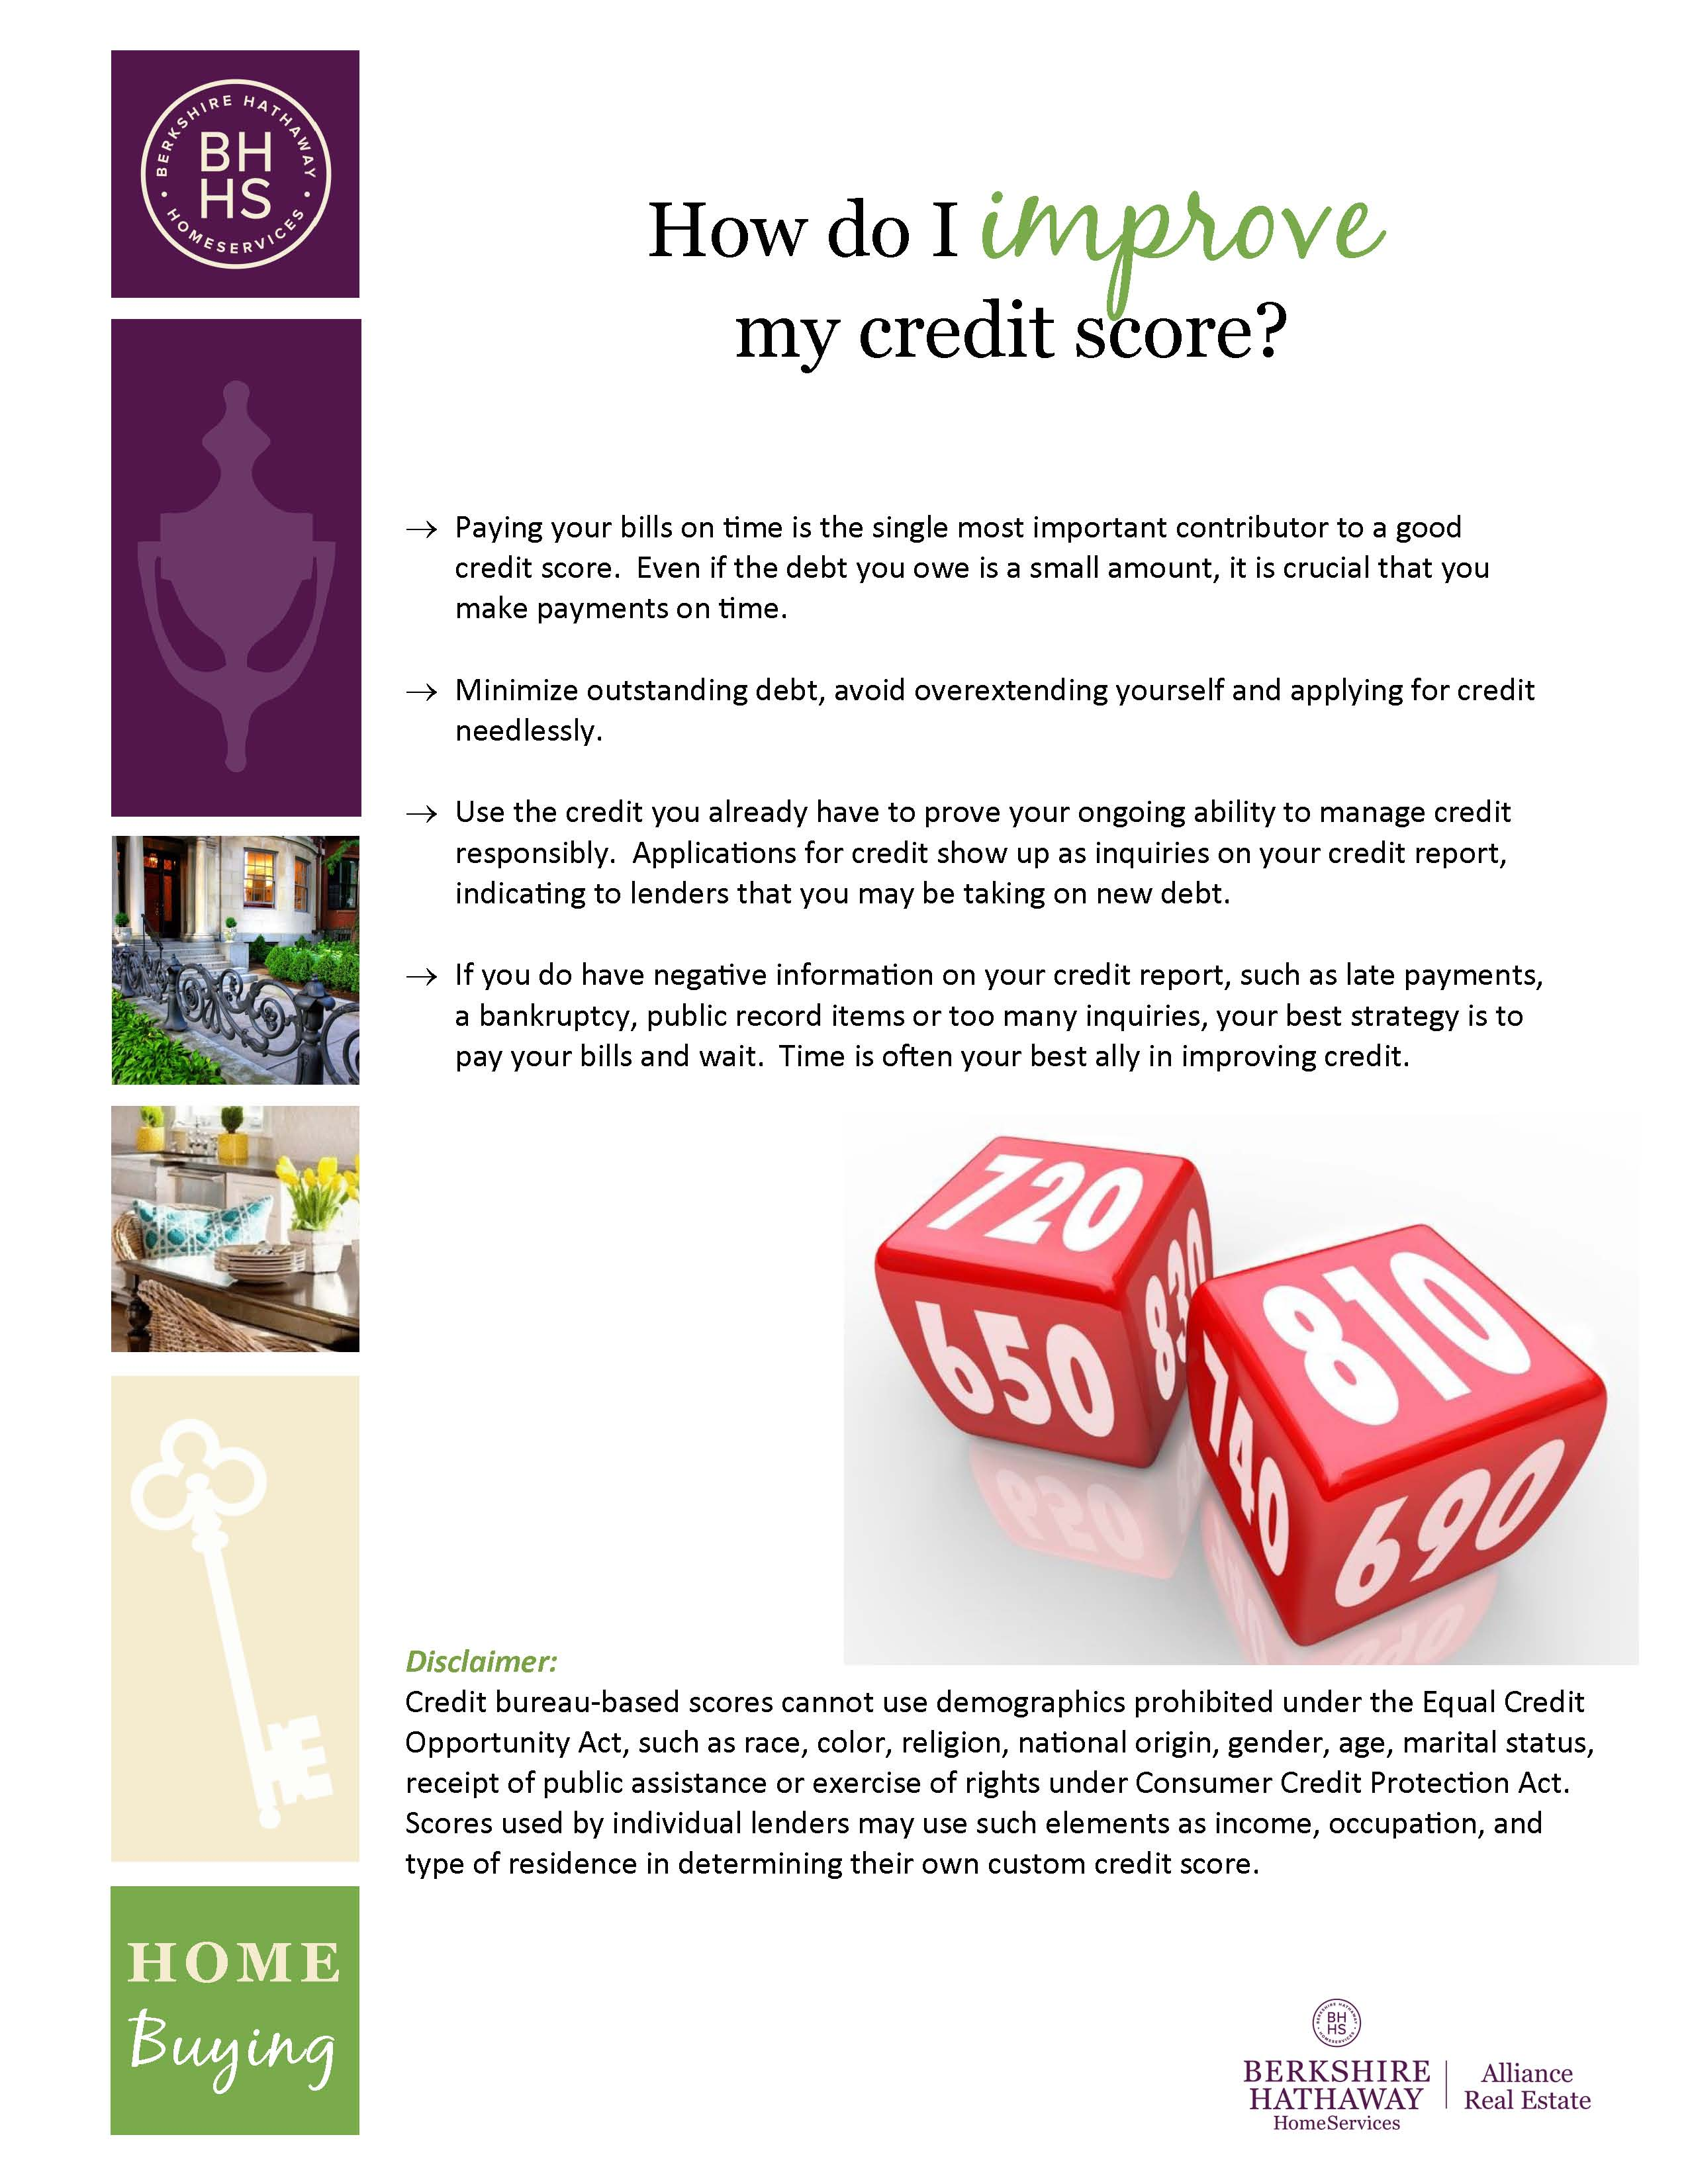 How To Improve Your Credit Score Rene Mooney Bhhs Alliance How To Build  Credit By Paying